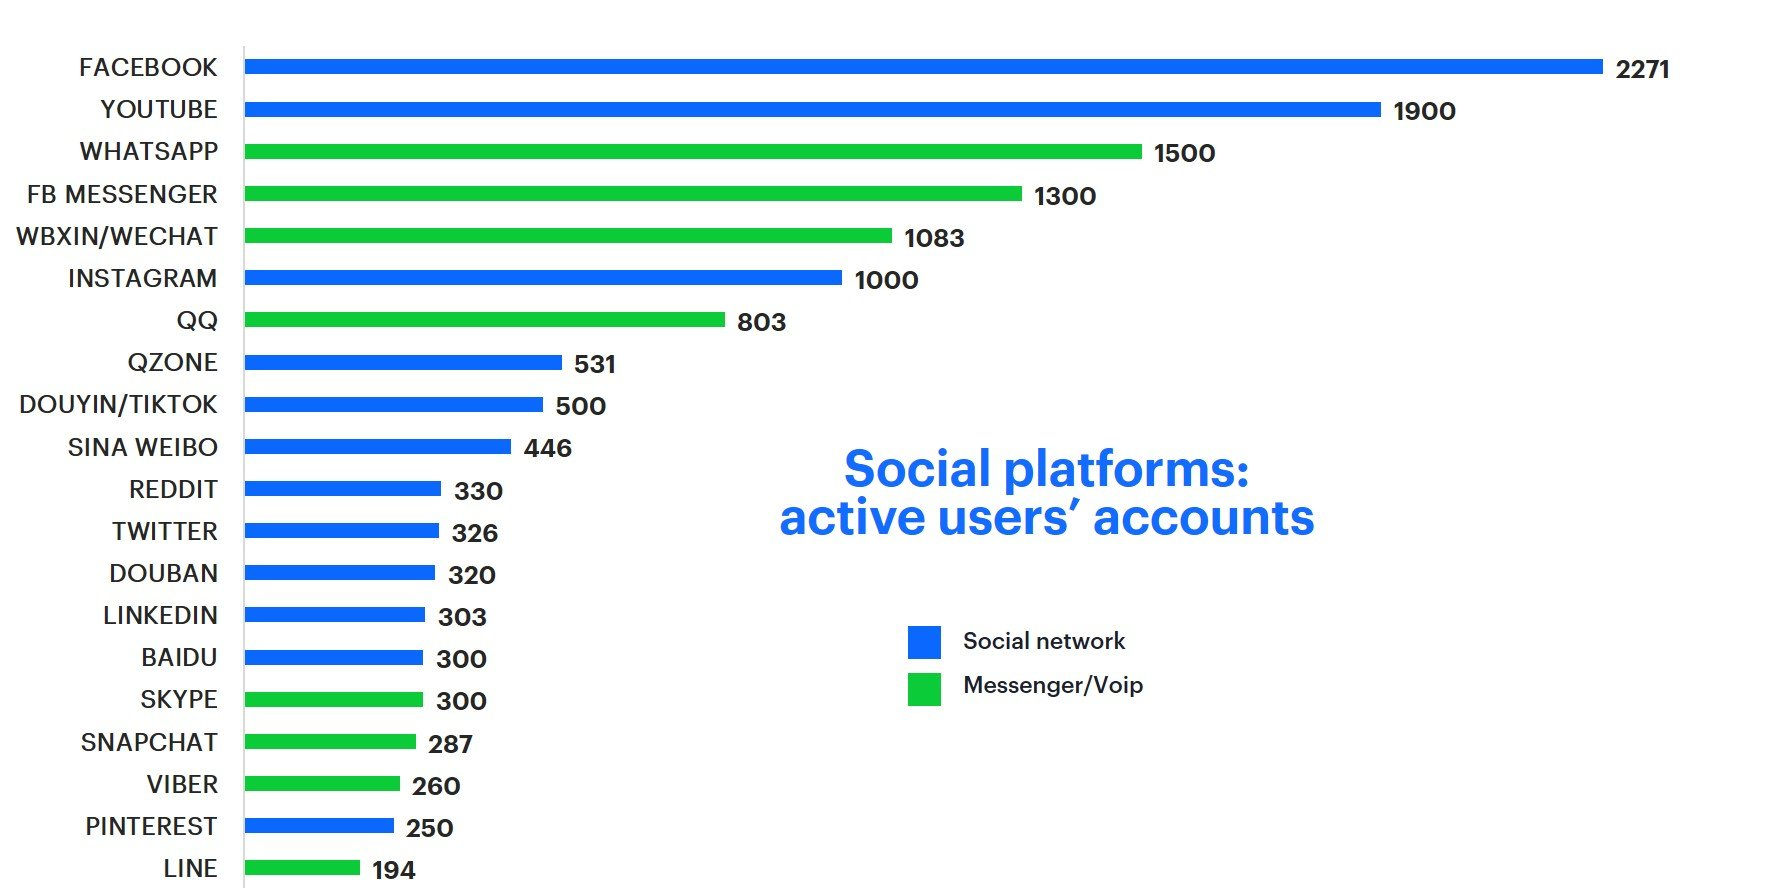 Chart presenting number of active users in different social media channels in 2019